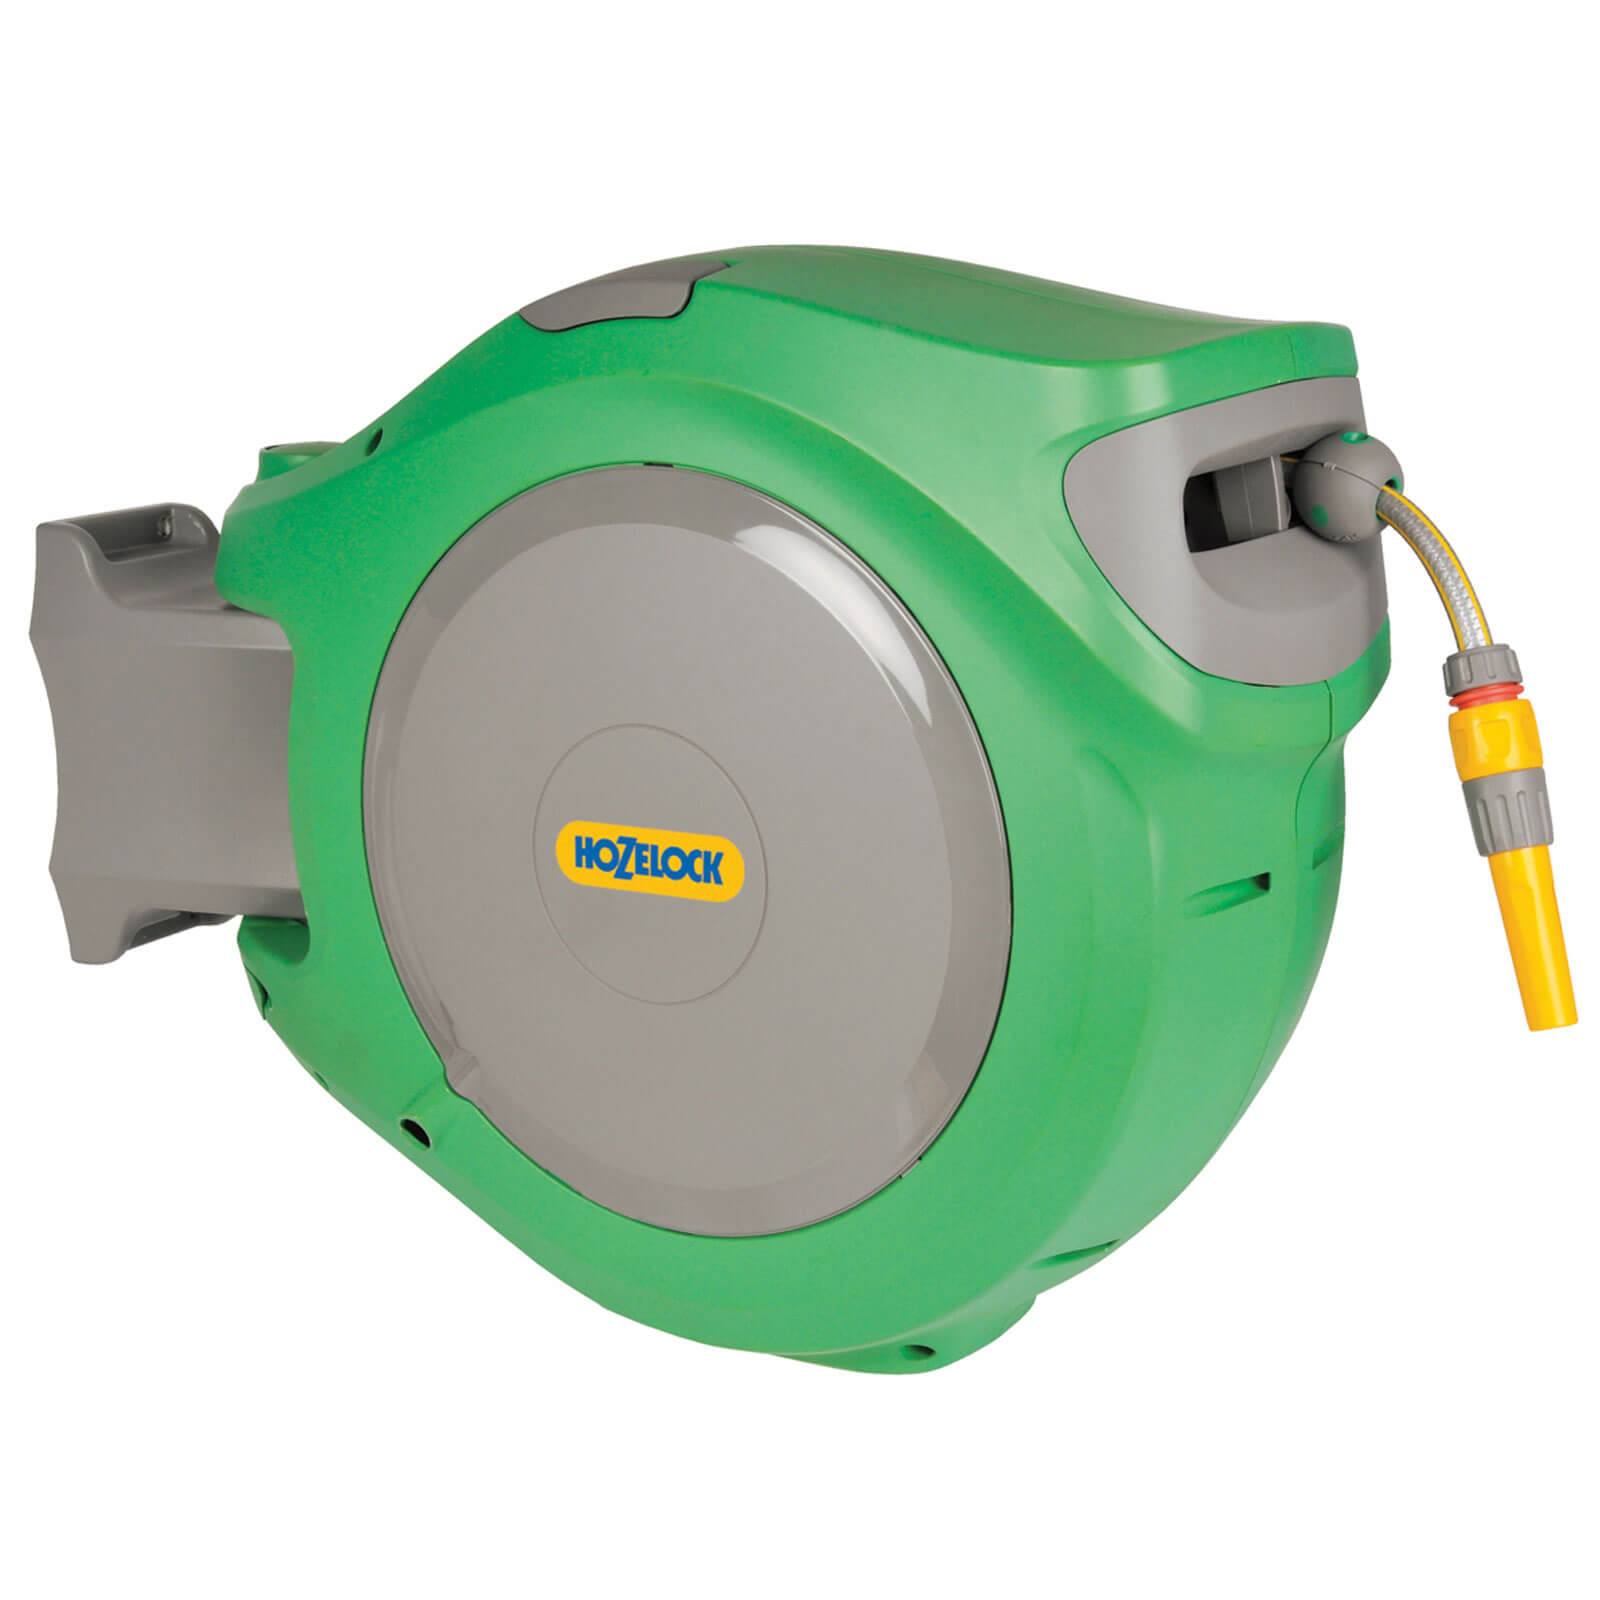 Hozelock 30 Metre Auto Hose Reel with 30 Metre Hose Pipe 12.5mm (1/2